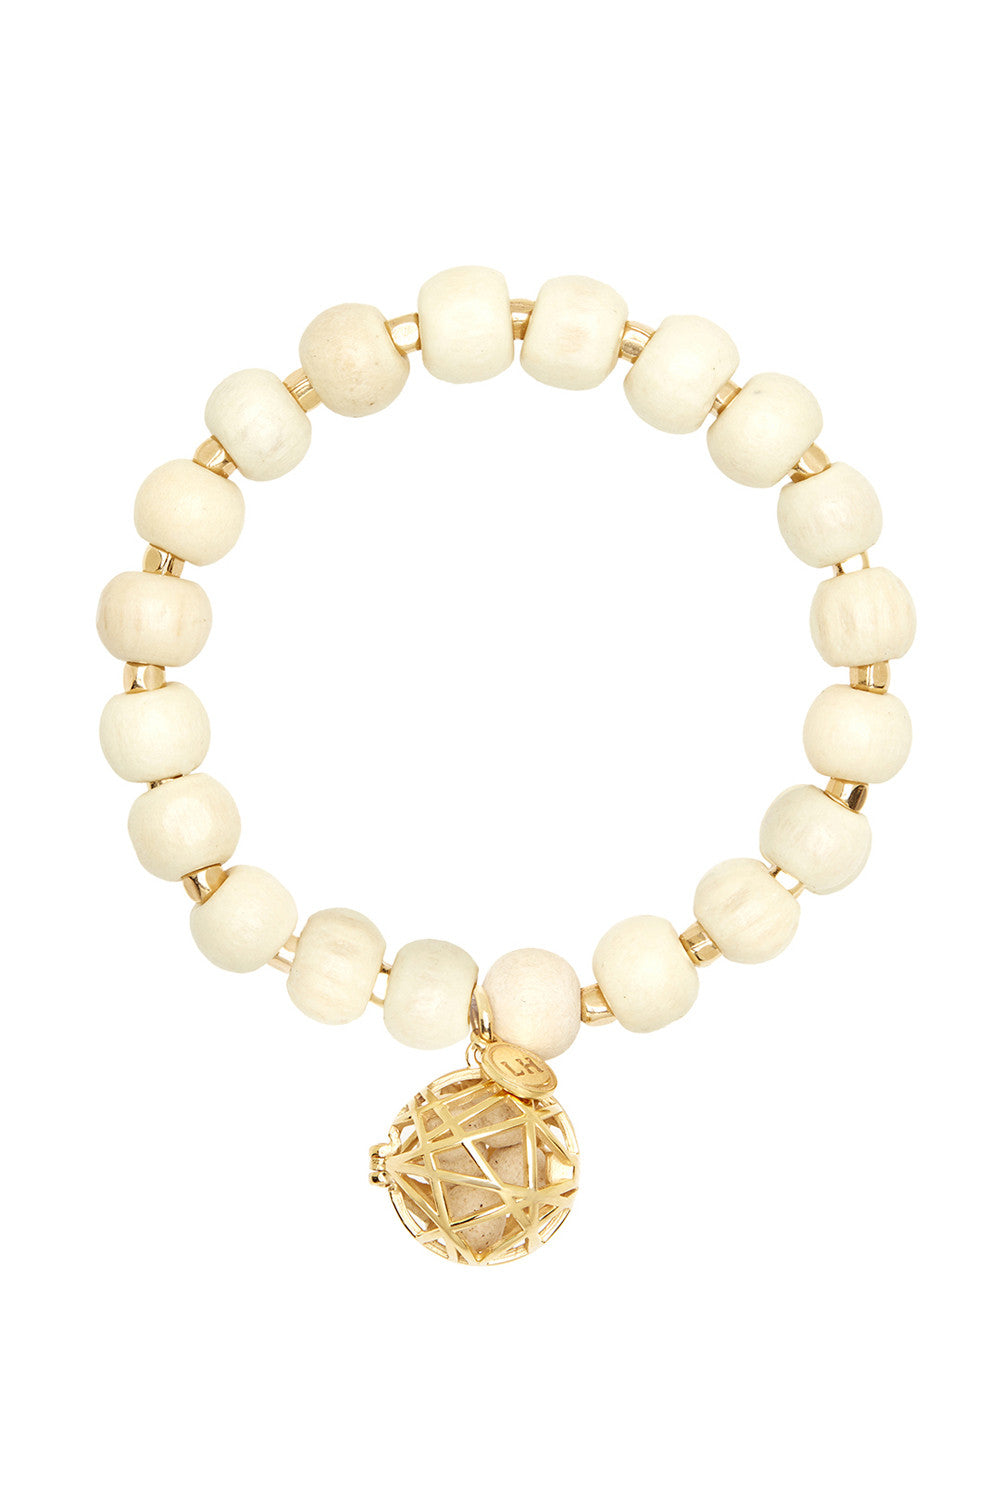 Blonde Wood Bracelet with Gold Nest Charm